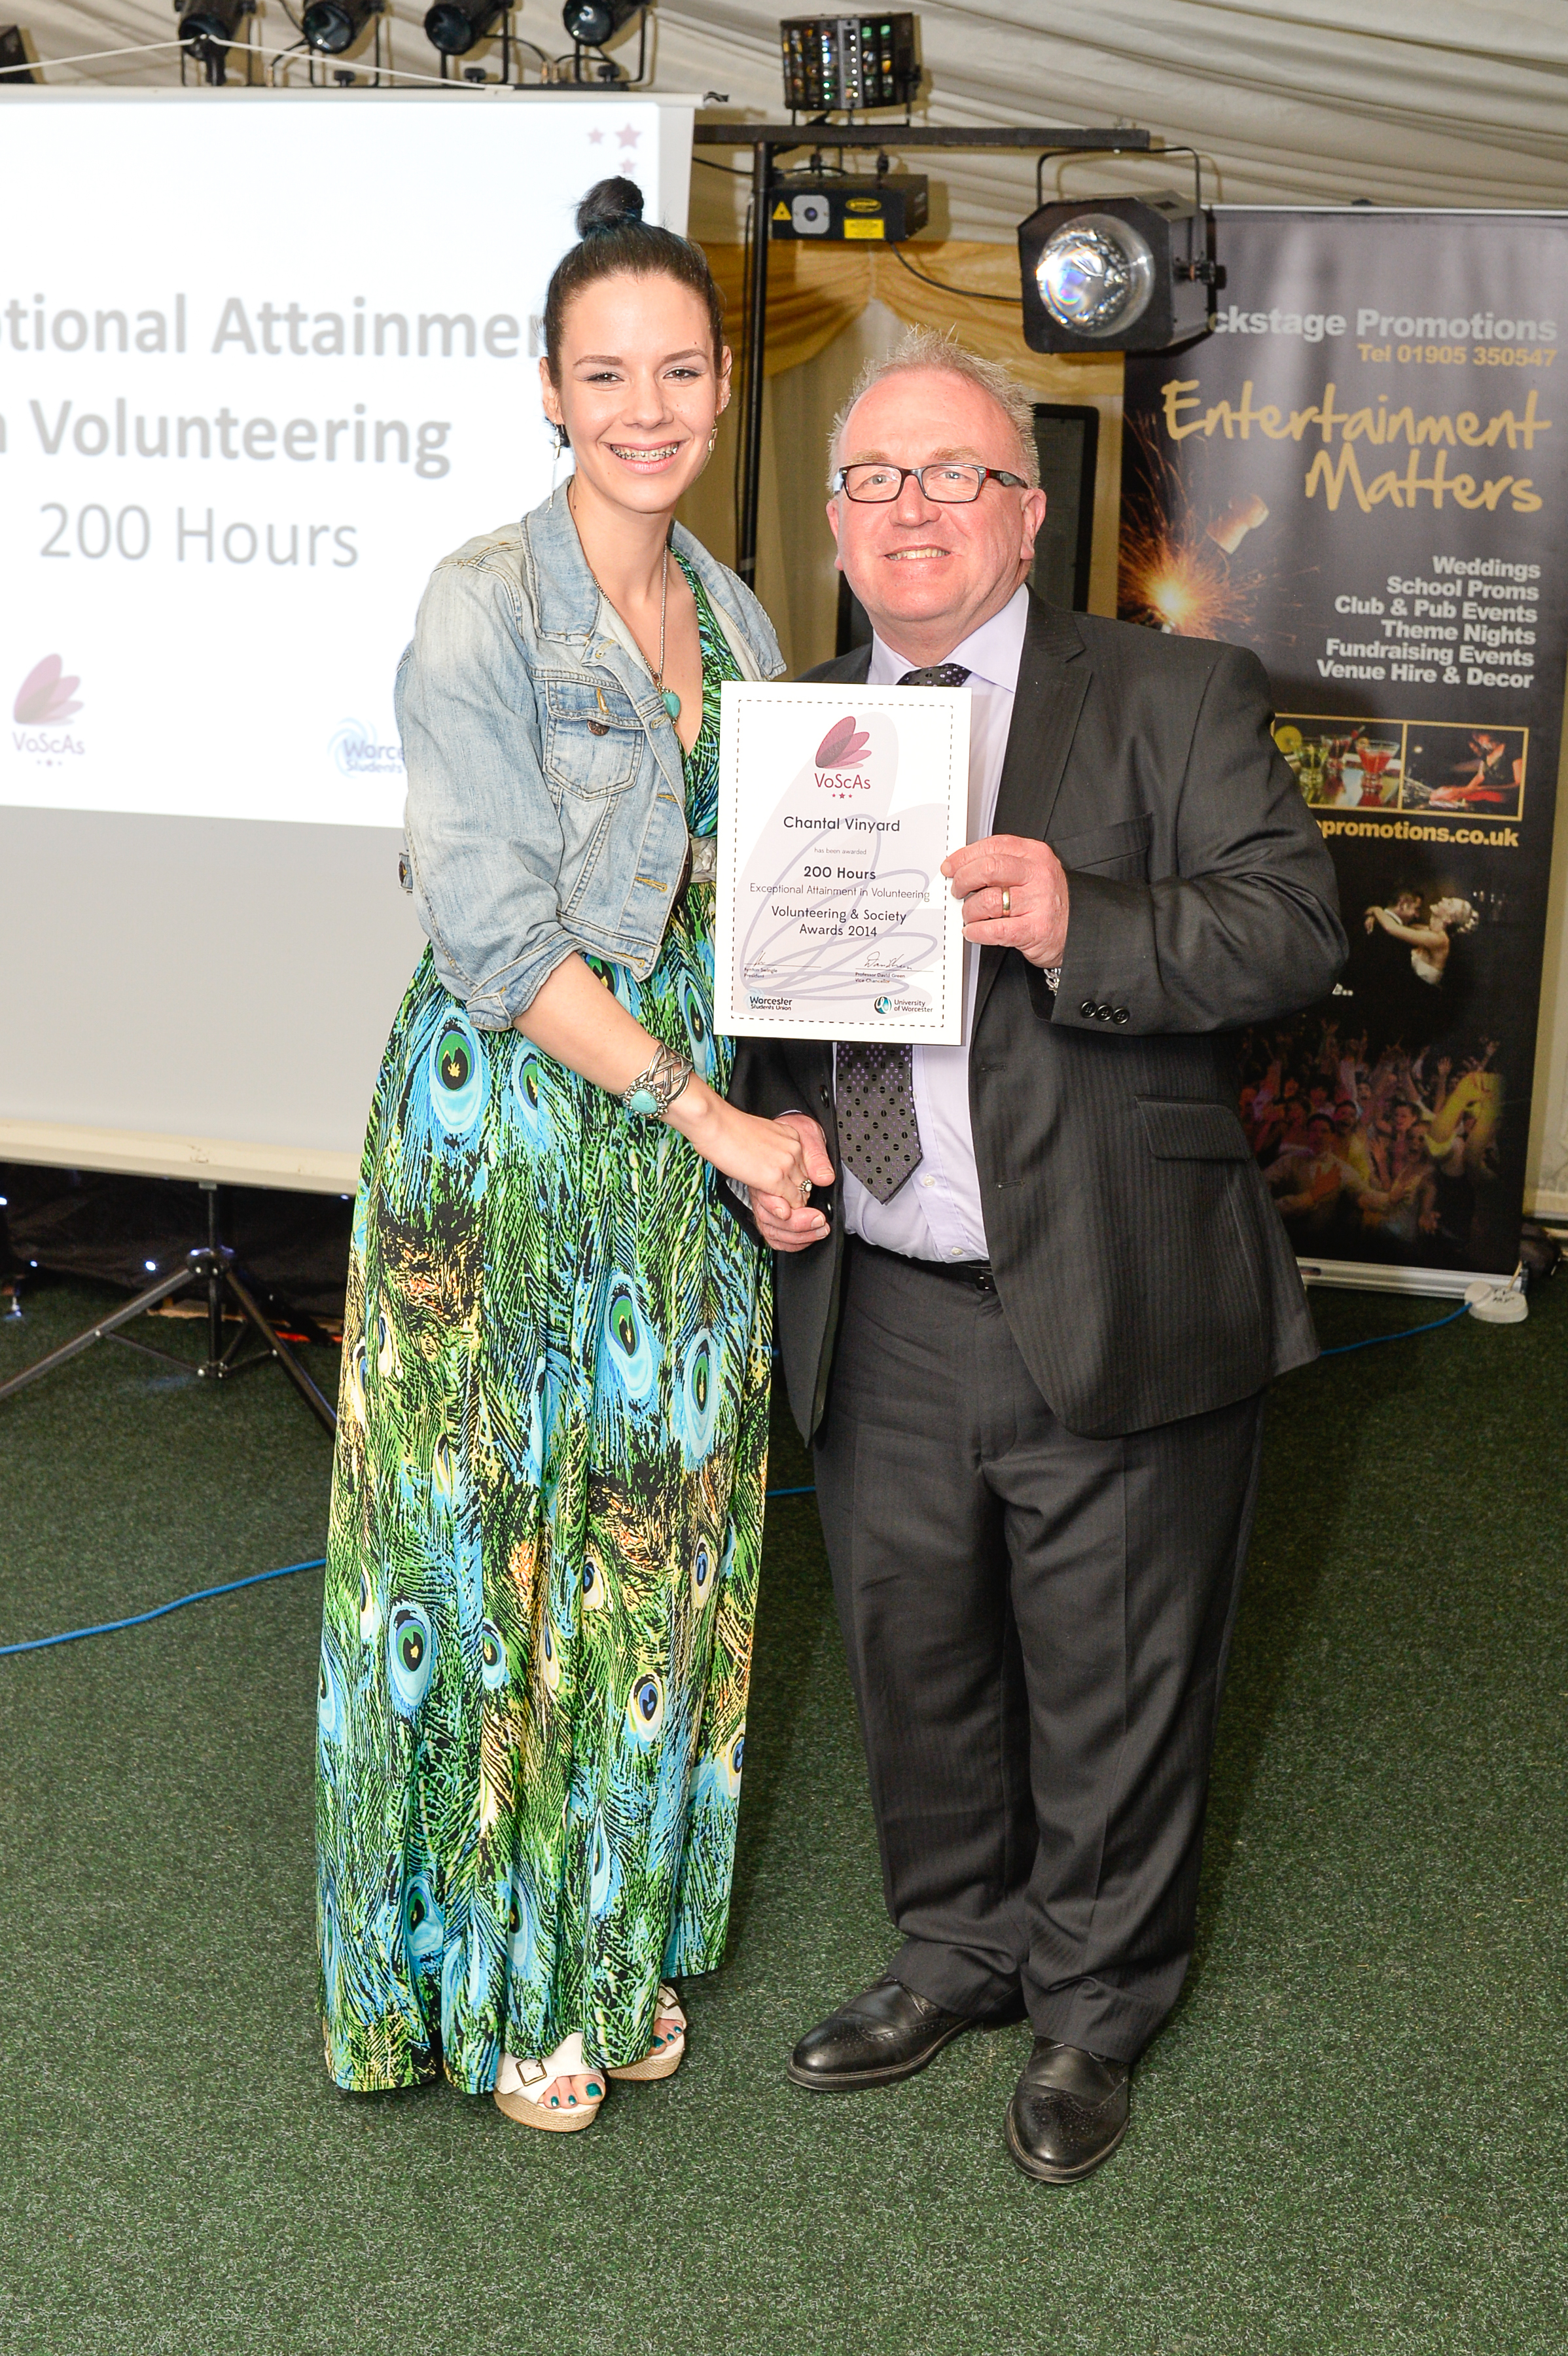 University of Worcester student Chantal Vinyard receiving her award award from University of Worcester Pro Vice Chancellor Students, John Ryan.